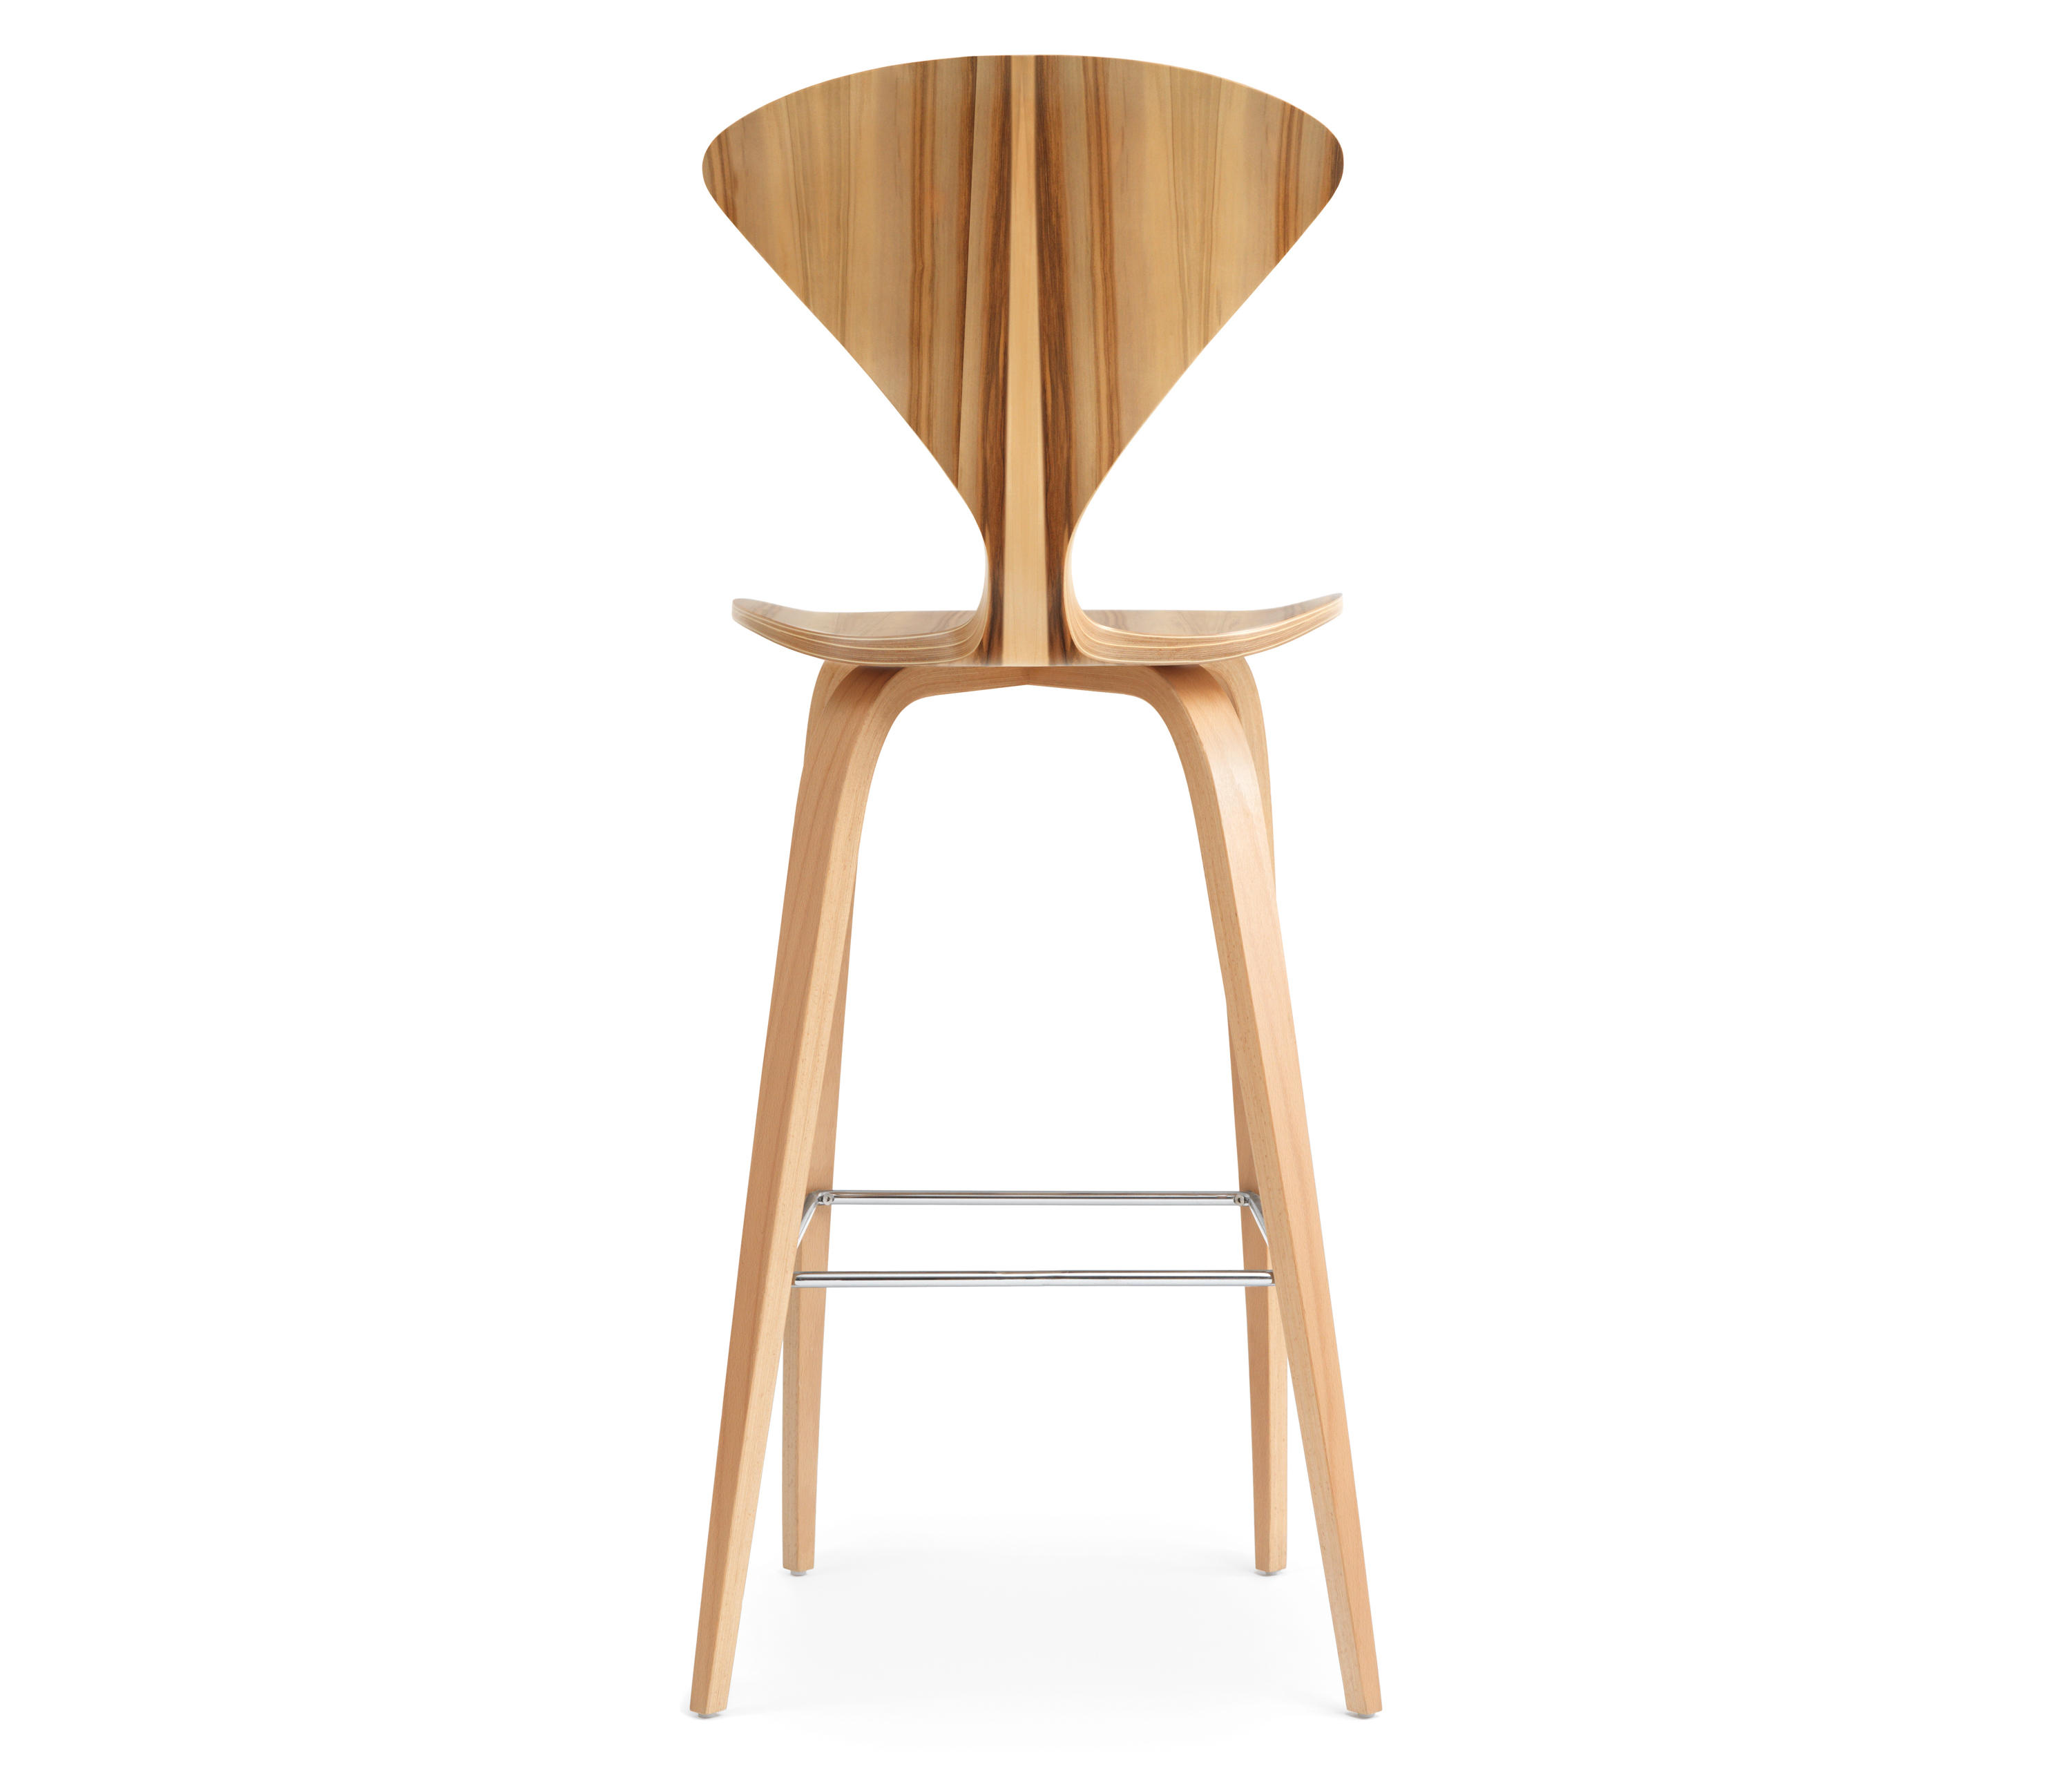 ... Cherner Wood Base Stool By Cherner | Bar Stools ... Great Ideas